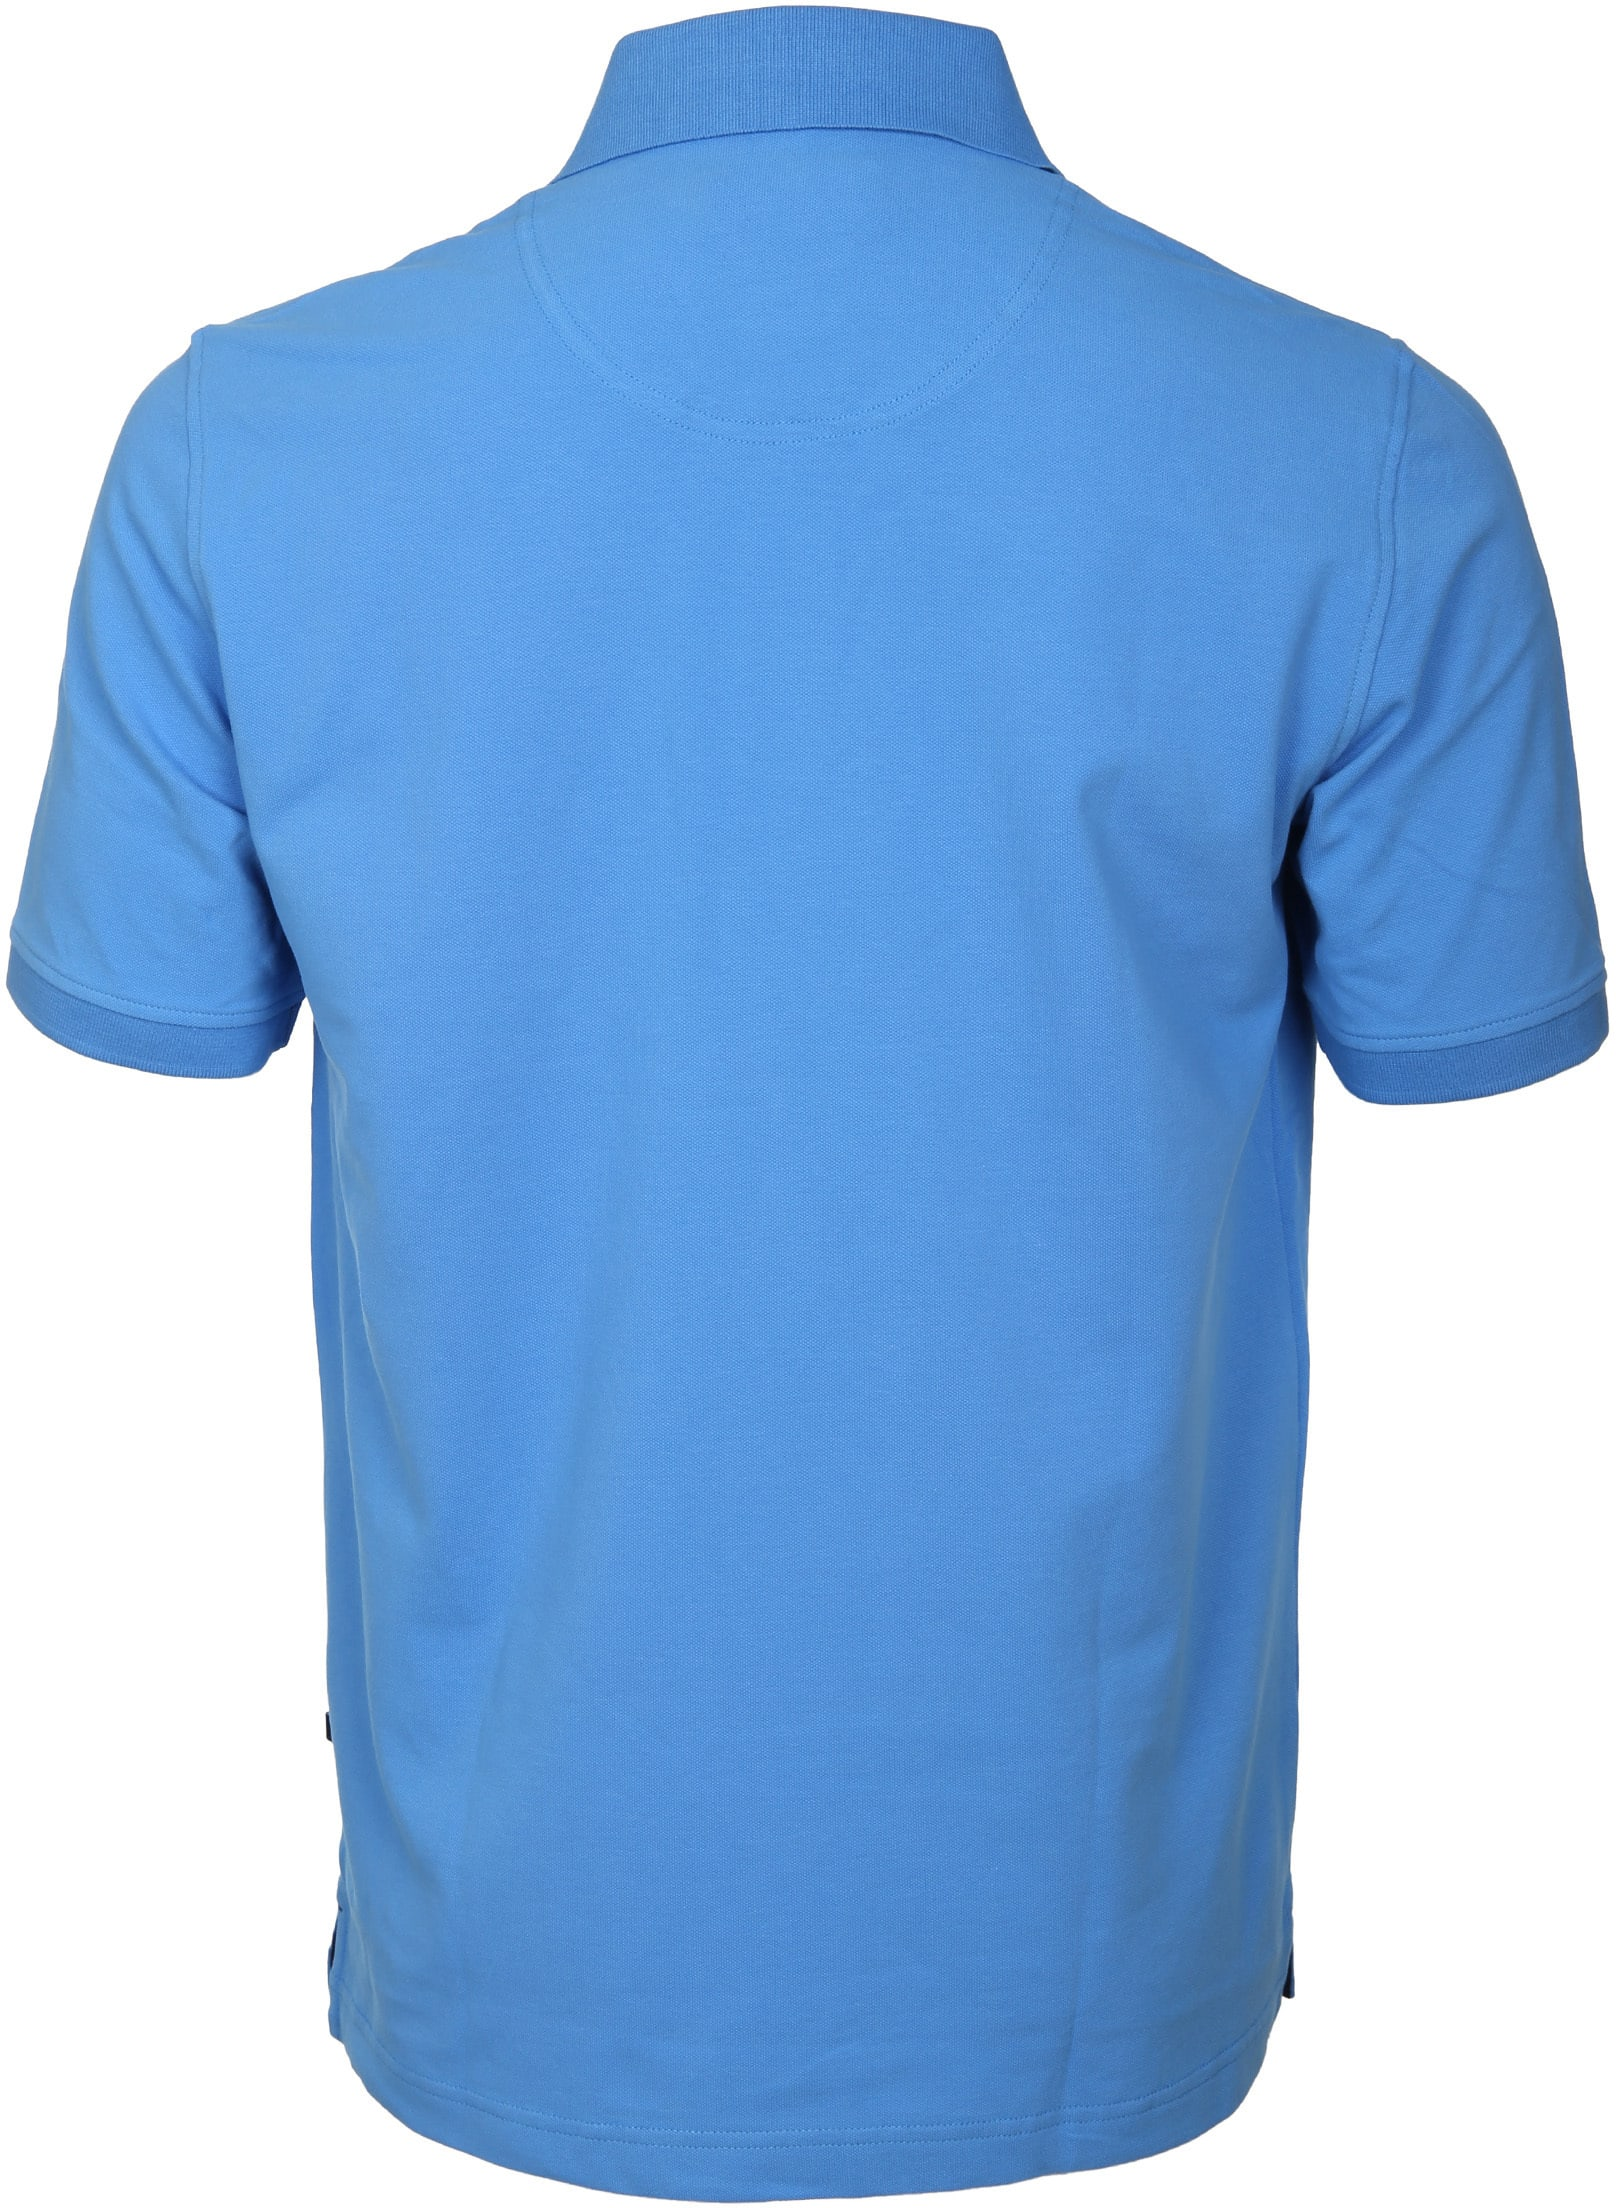 Suitable Poloshirt Basic Blau foto 4